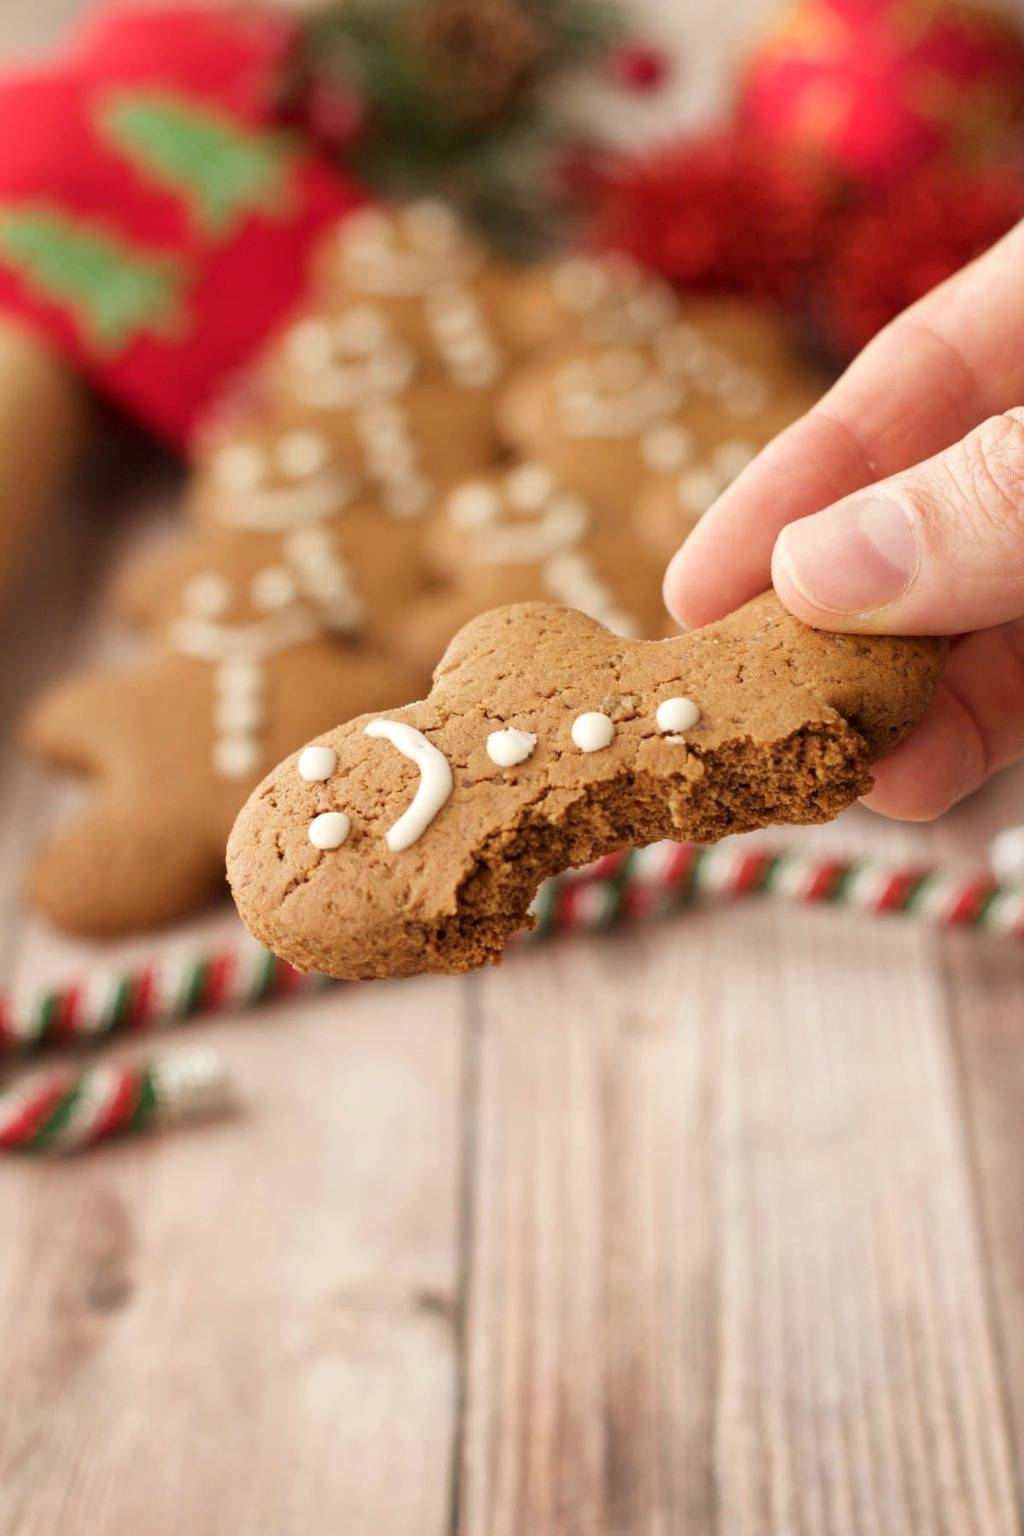 Vegan Gingerbread Cookies. Festive and fun, crispy on the outside, soft and chewy on the inside and packed with ginger, cinnamon and brown sugar flavor. #vegan #lovingitvegan #gingerbread #cookies #dessert